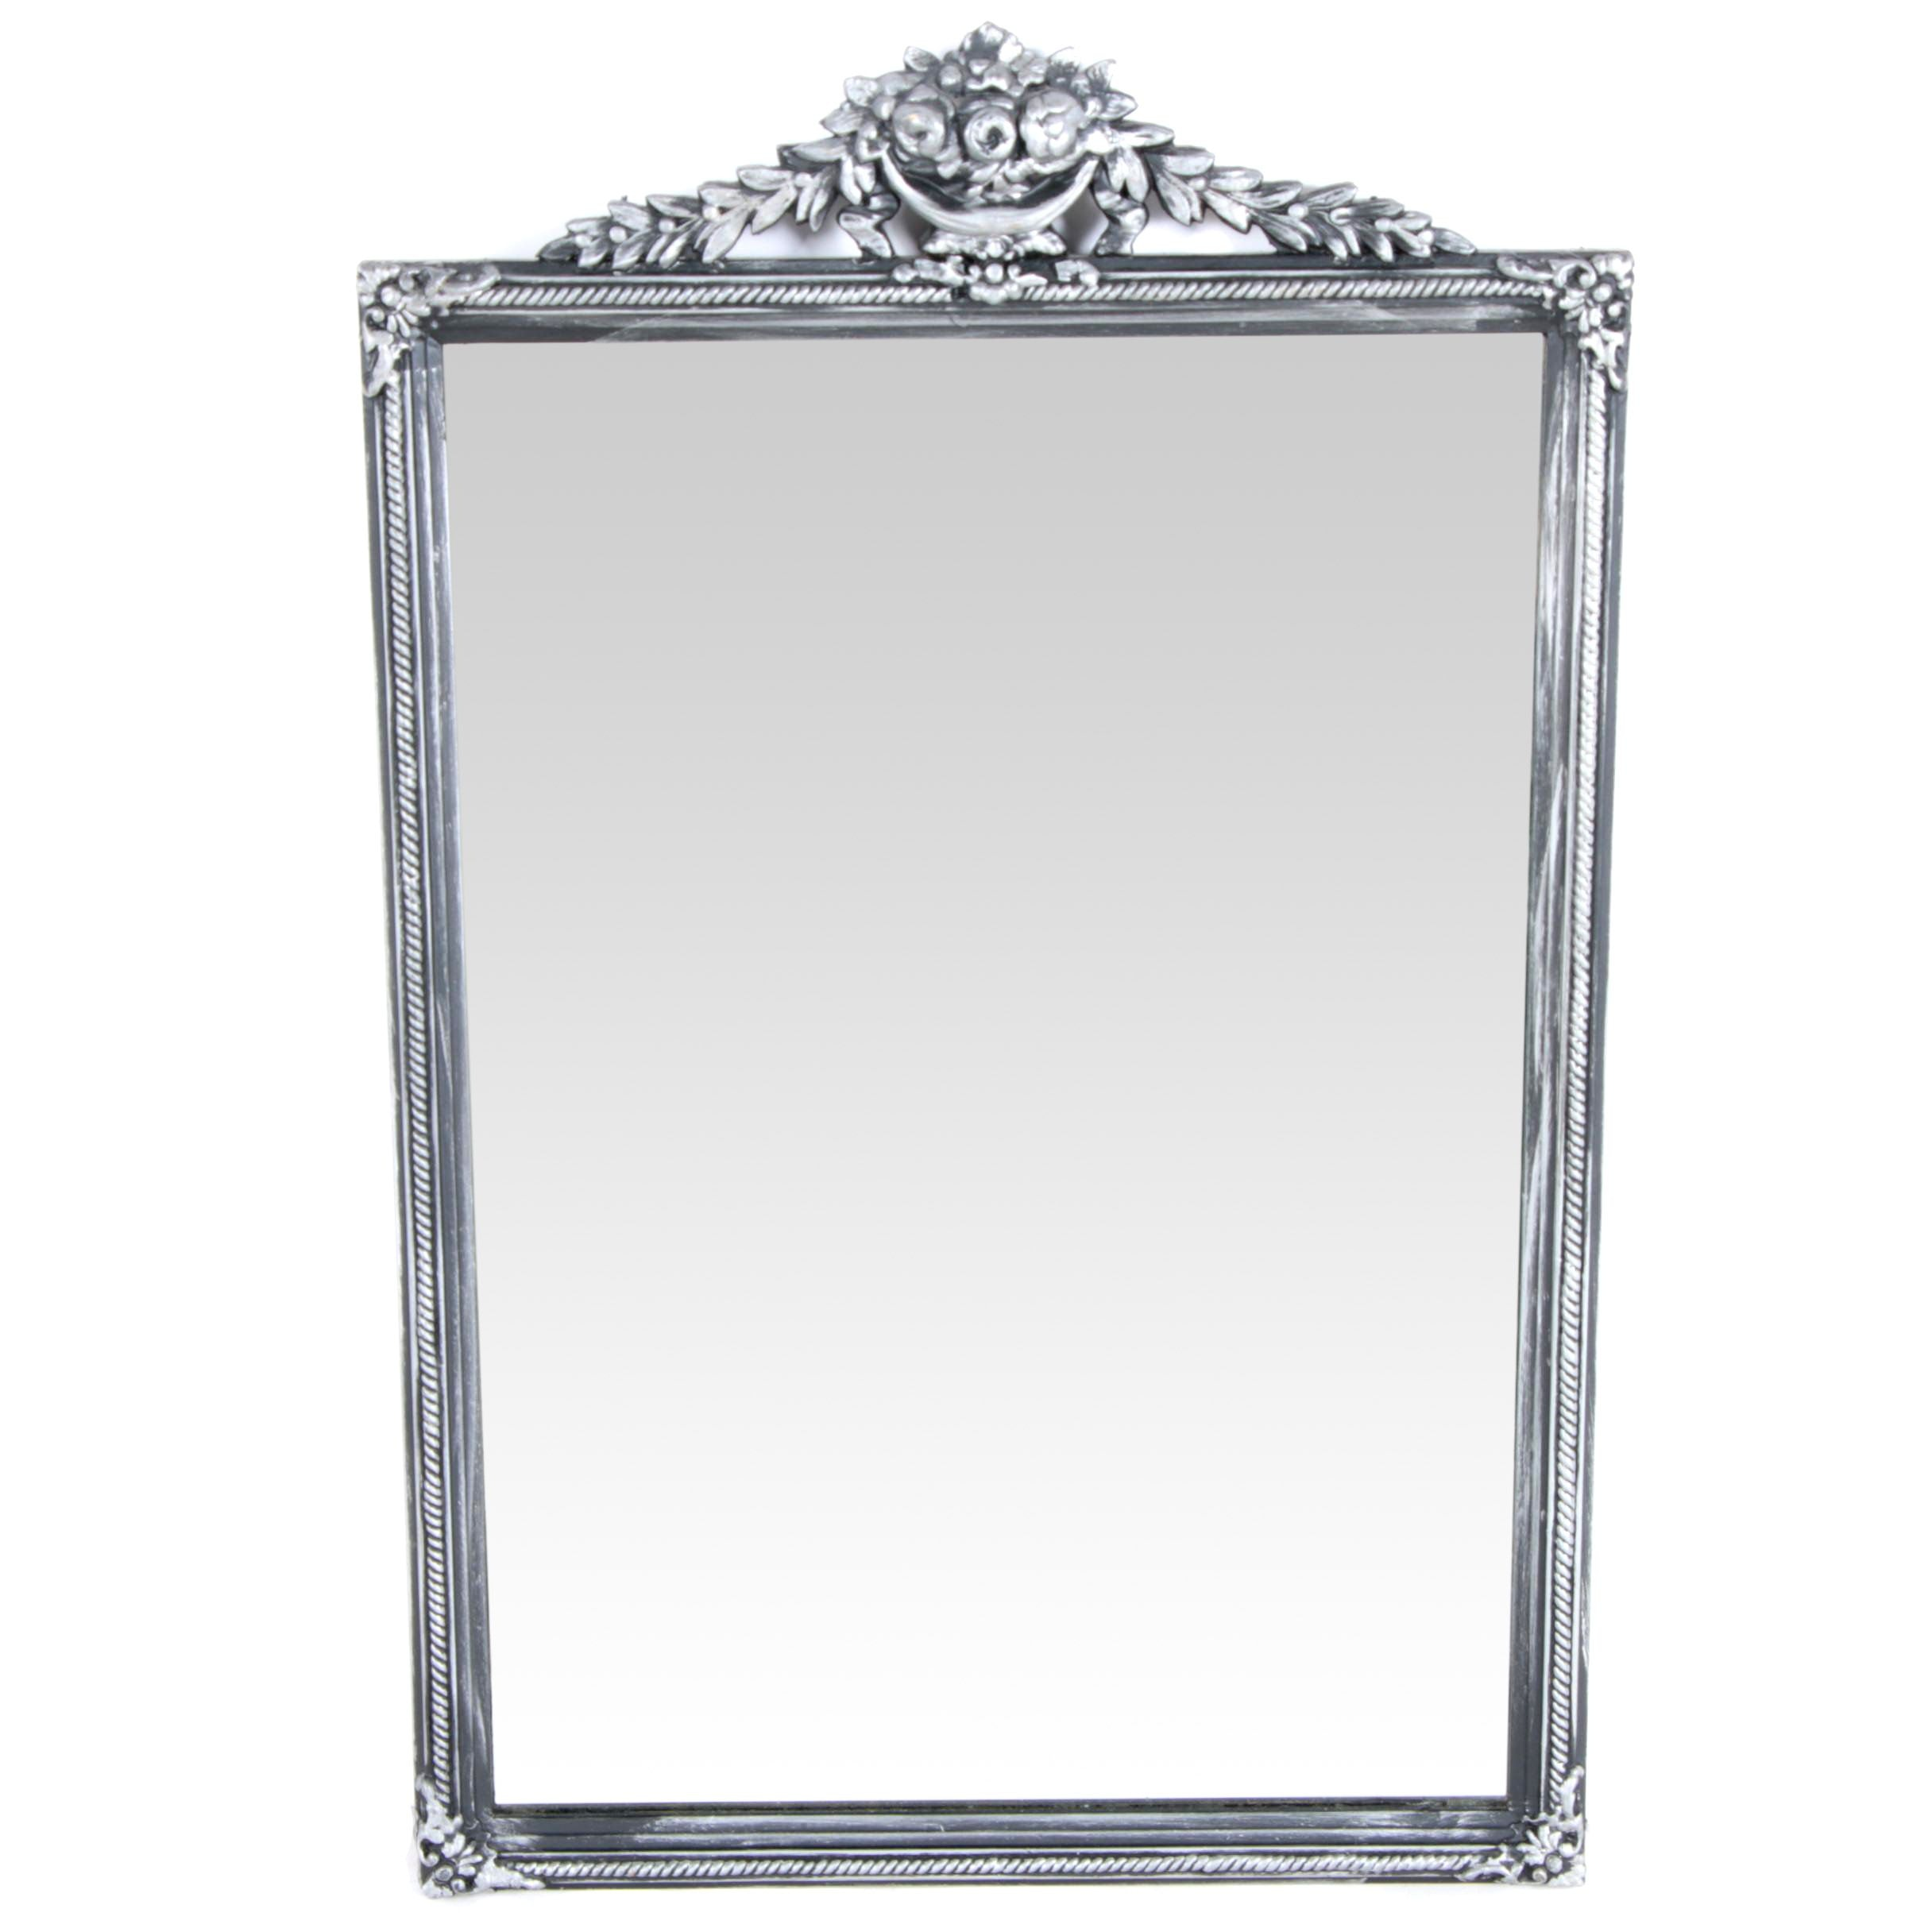 Black and Silver Tone Wall Mirror